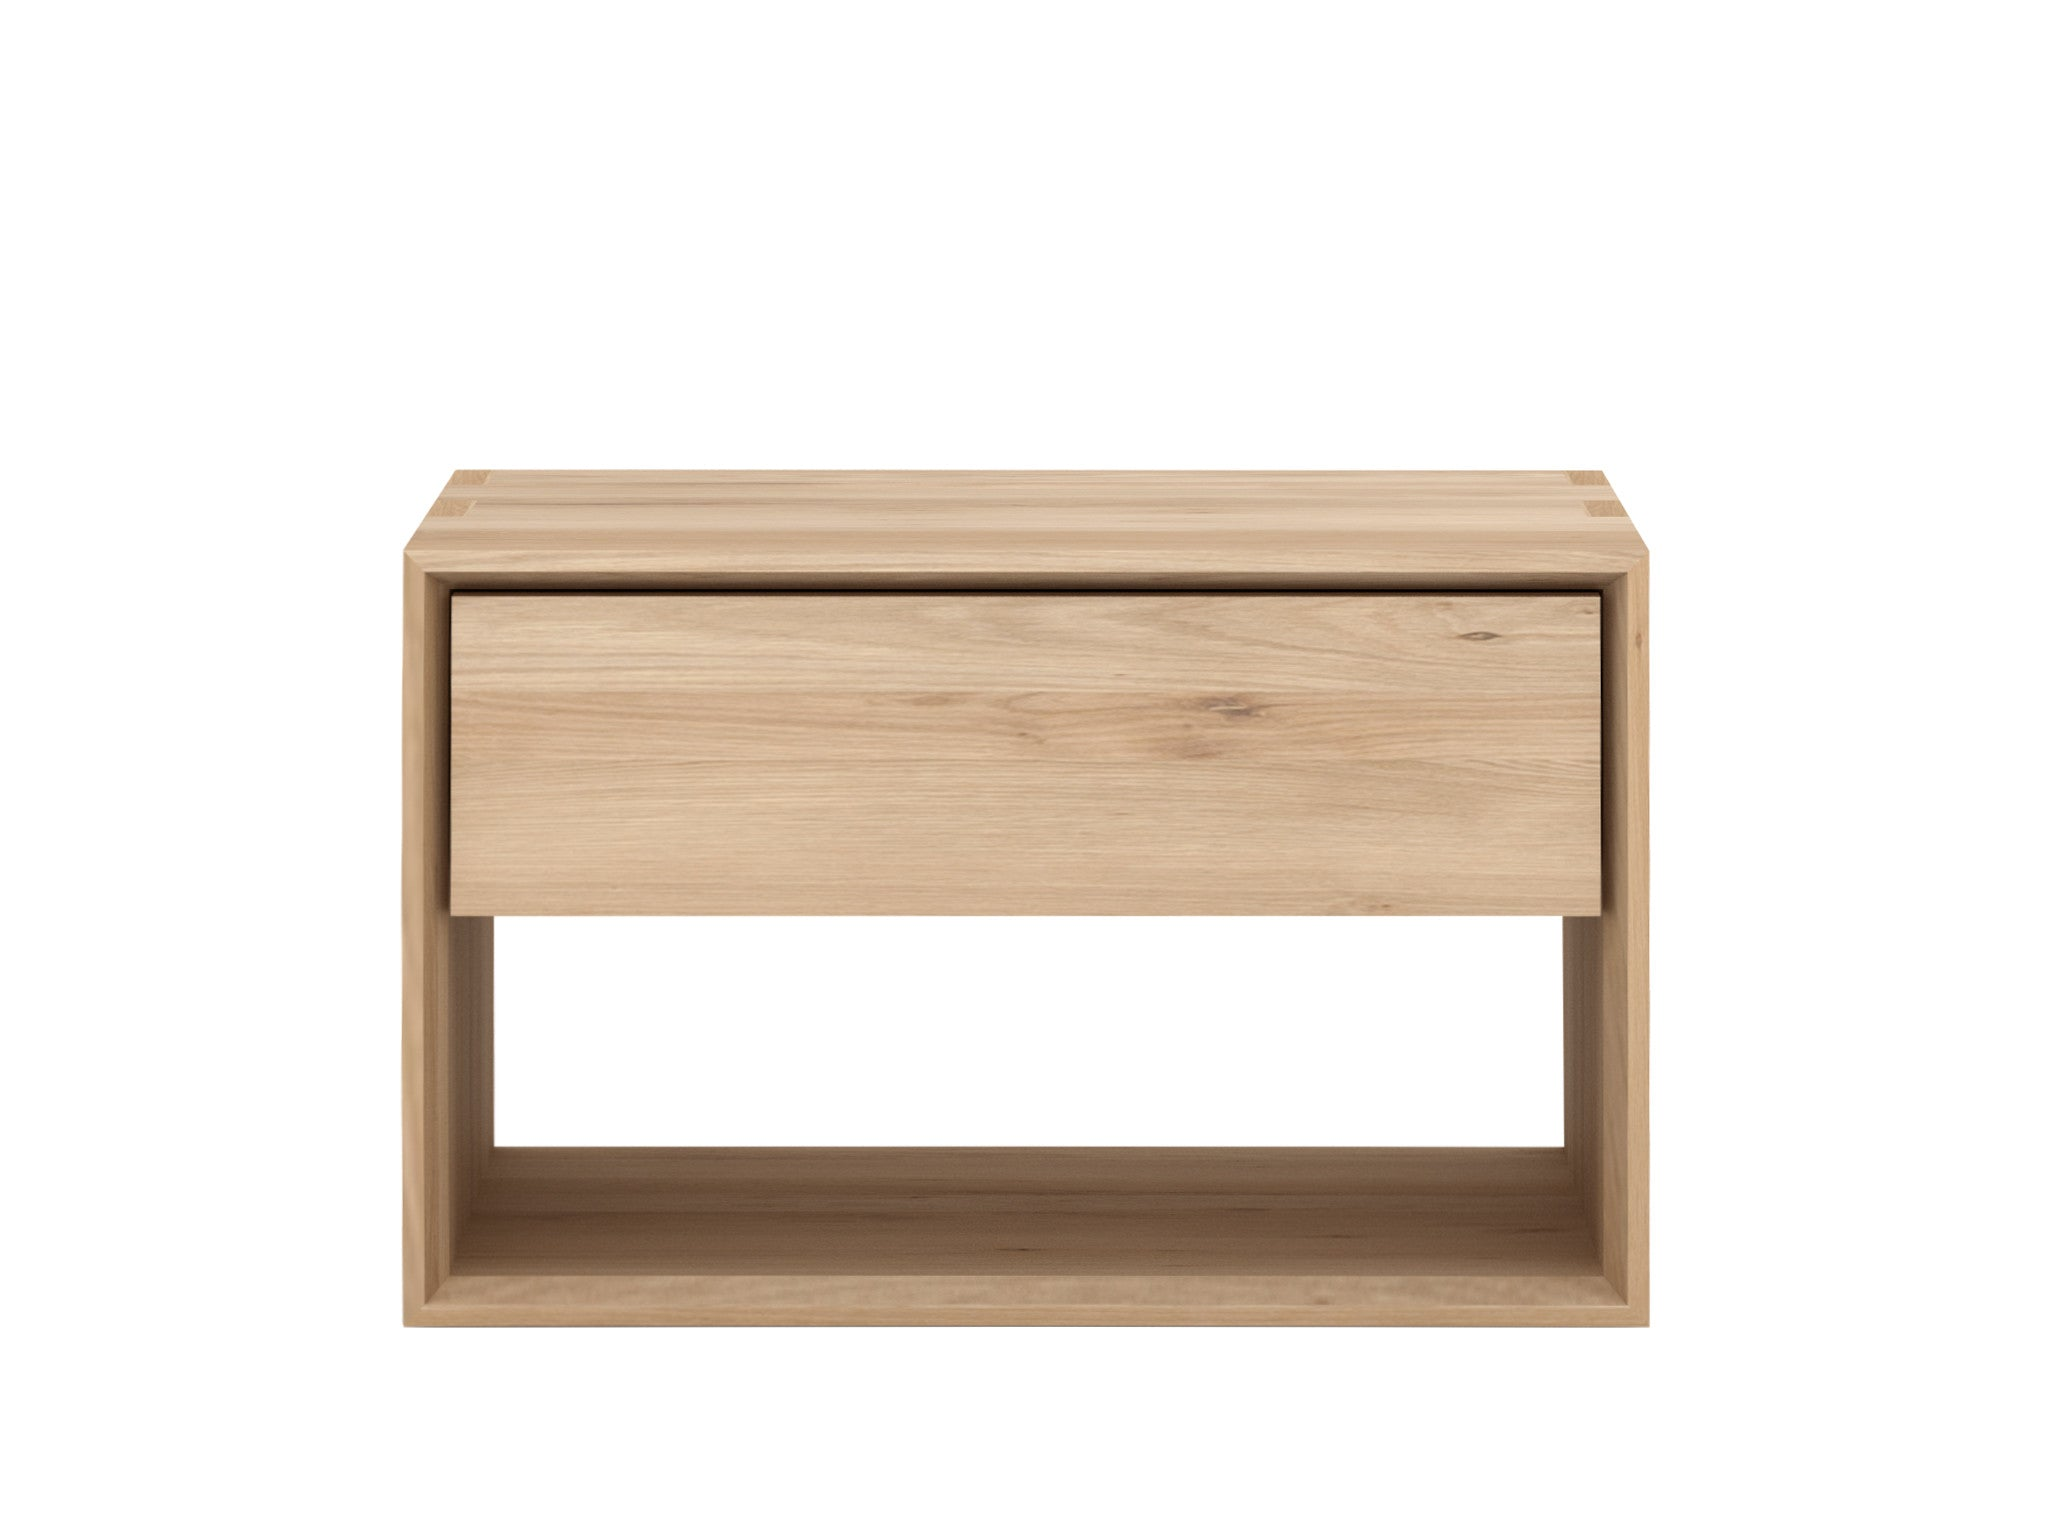 ETH Oak Nordic 2 Bedside Drawer Hunter Valley Design